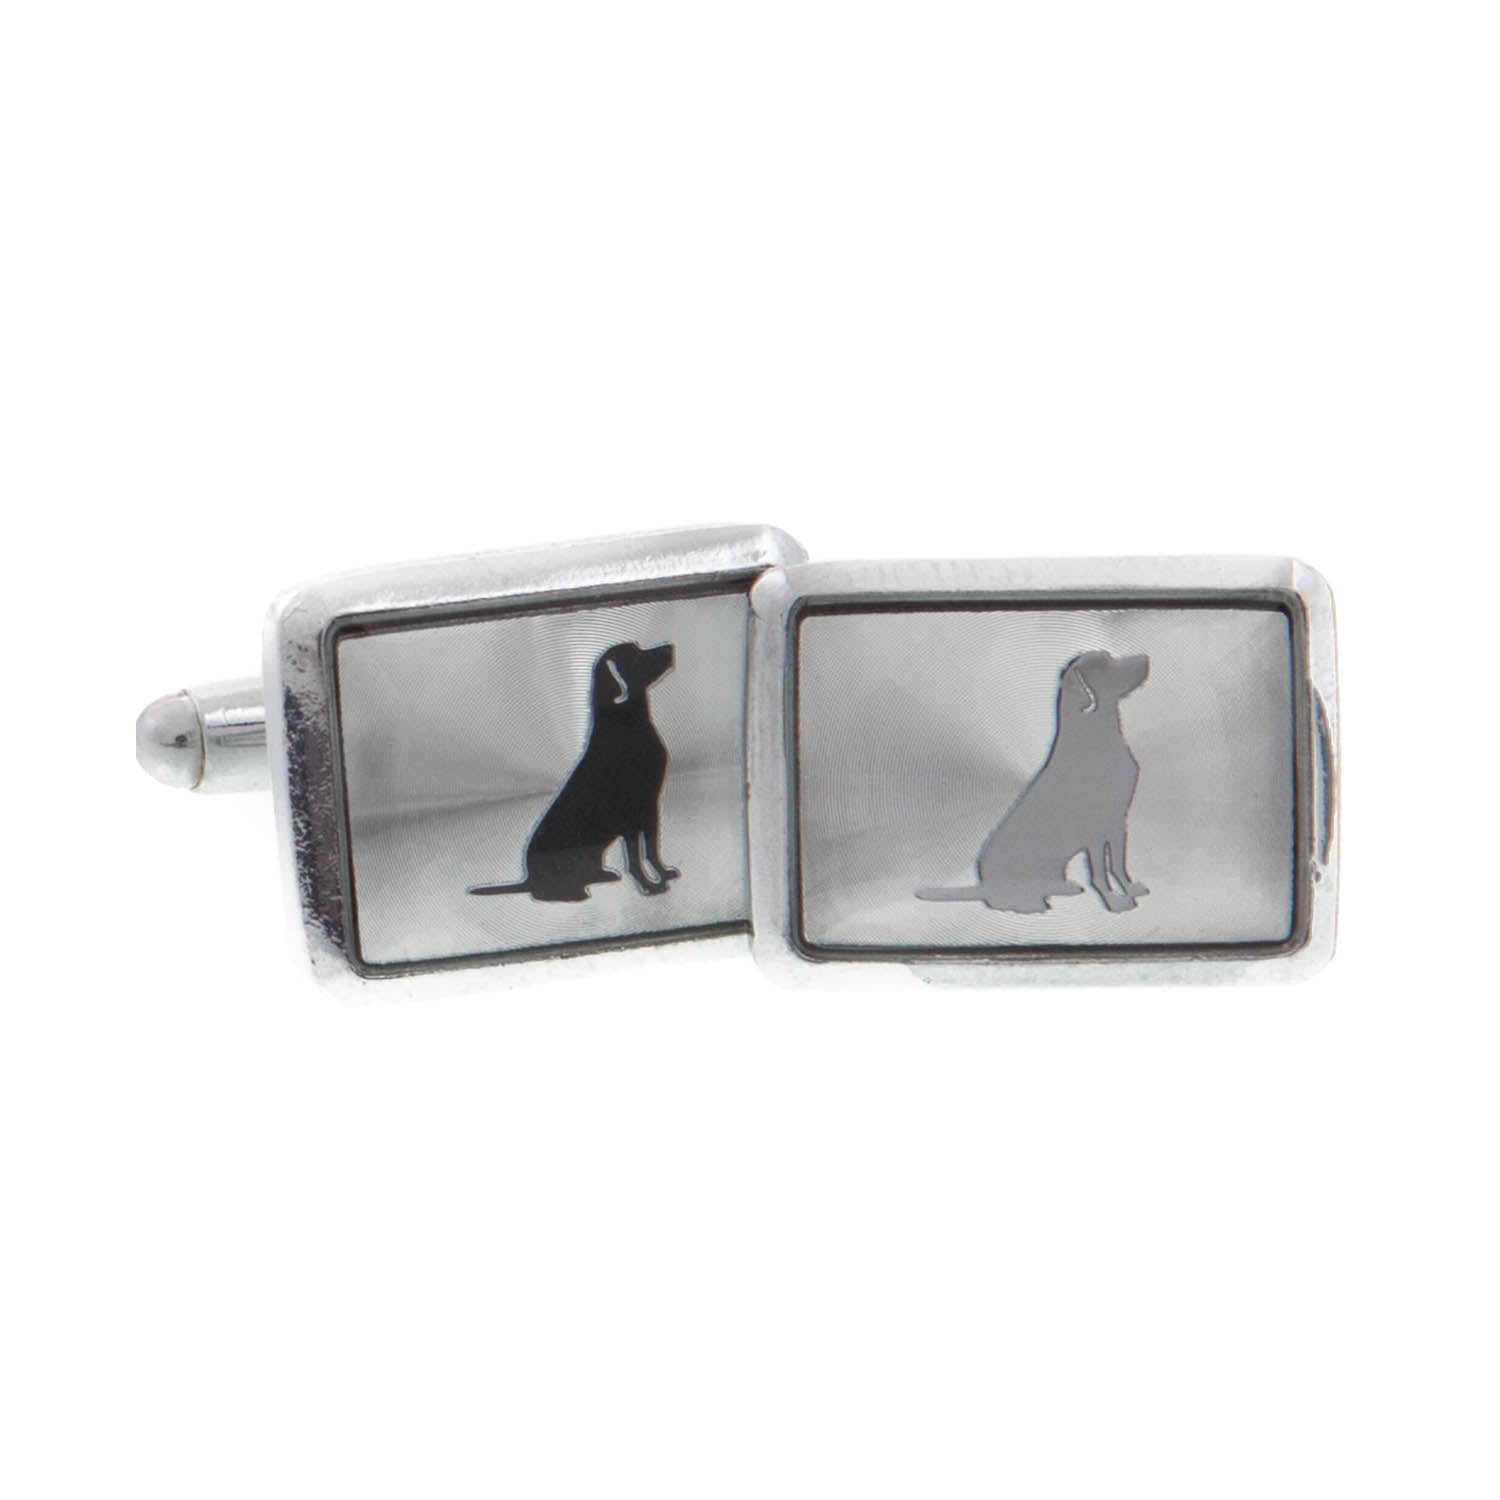 Dog Lover Gifts available at Dog Krazy Gifts - Black Dog Cufflinks, part of the range of Labrador themed gifts available from DogKrazyGifts.co.uk